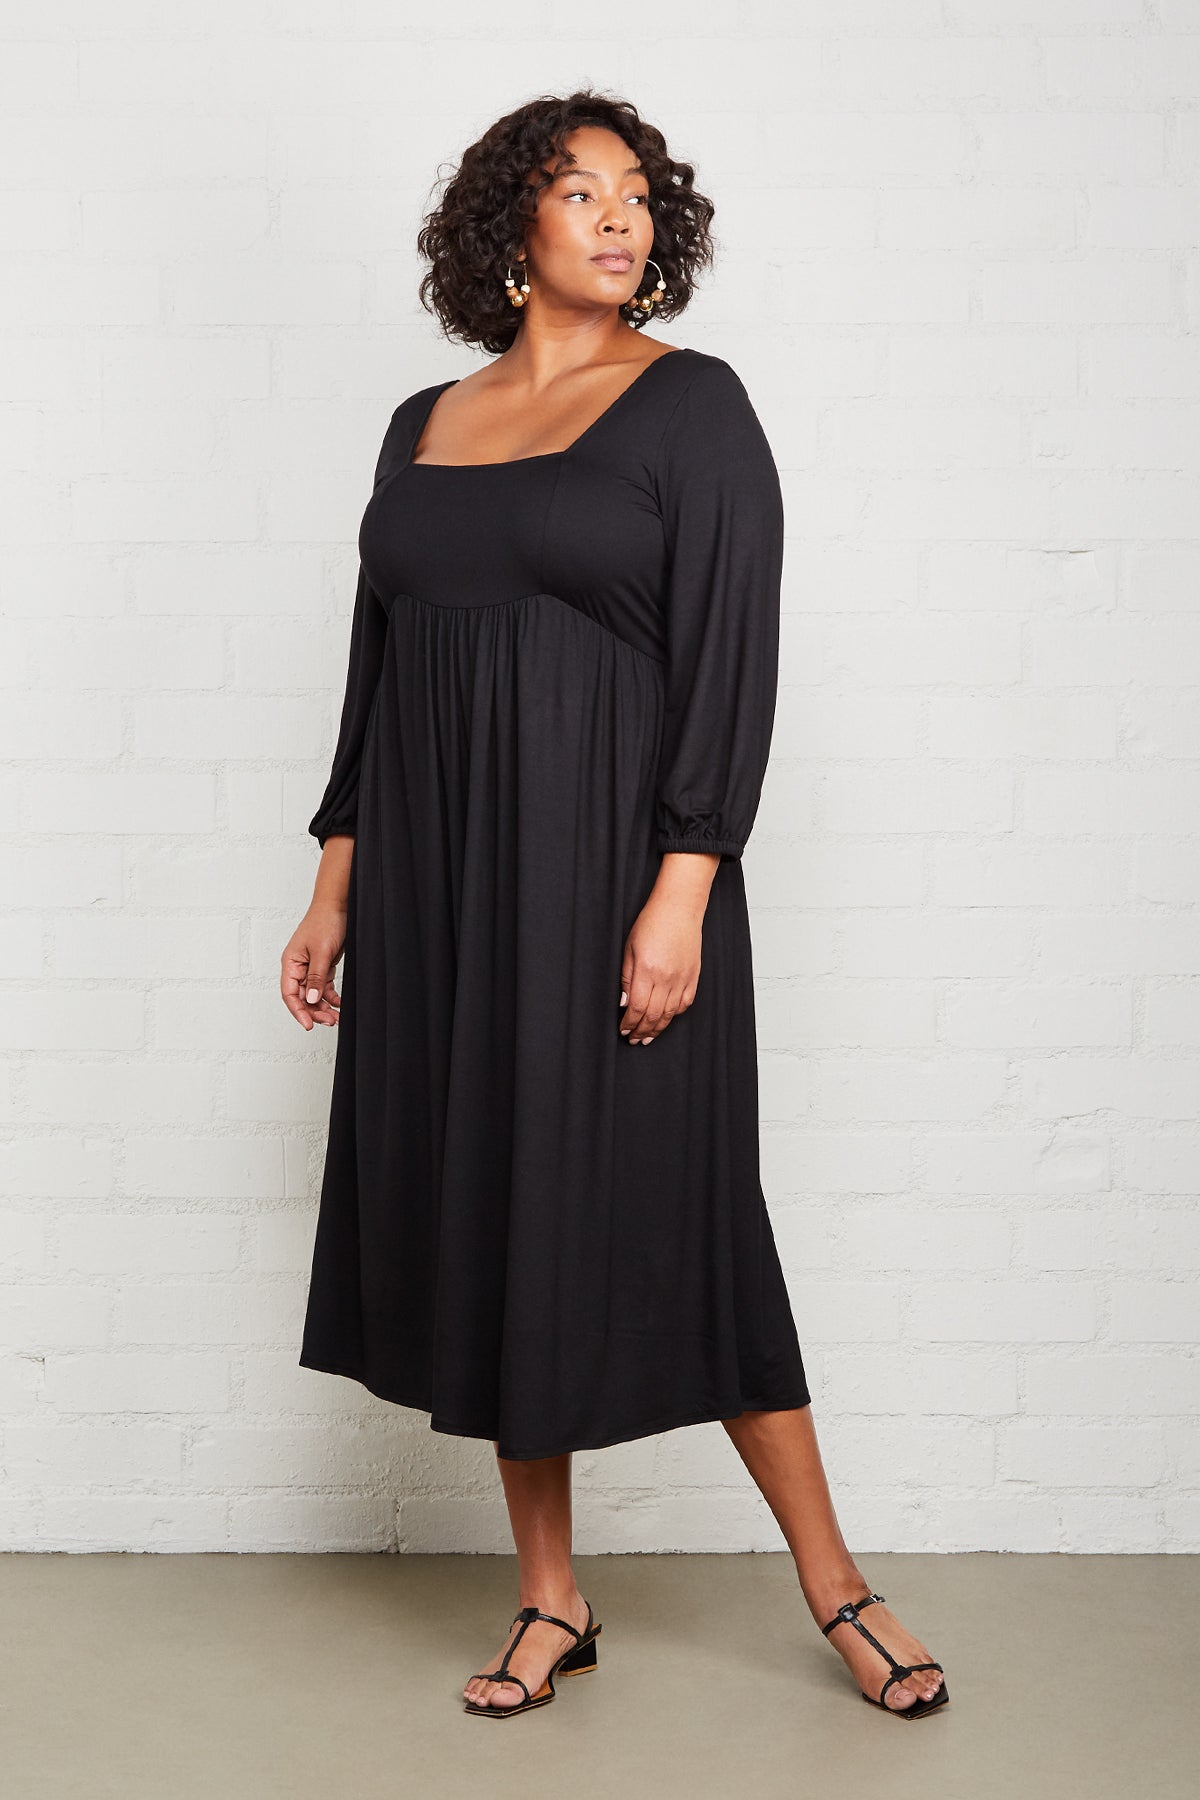 Raphaela Dress - Black, Plus Size